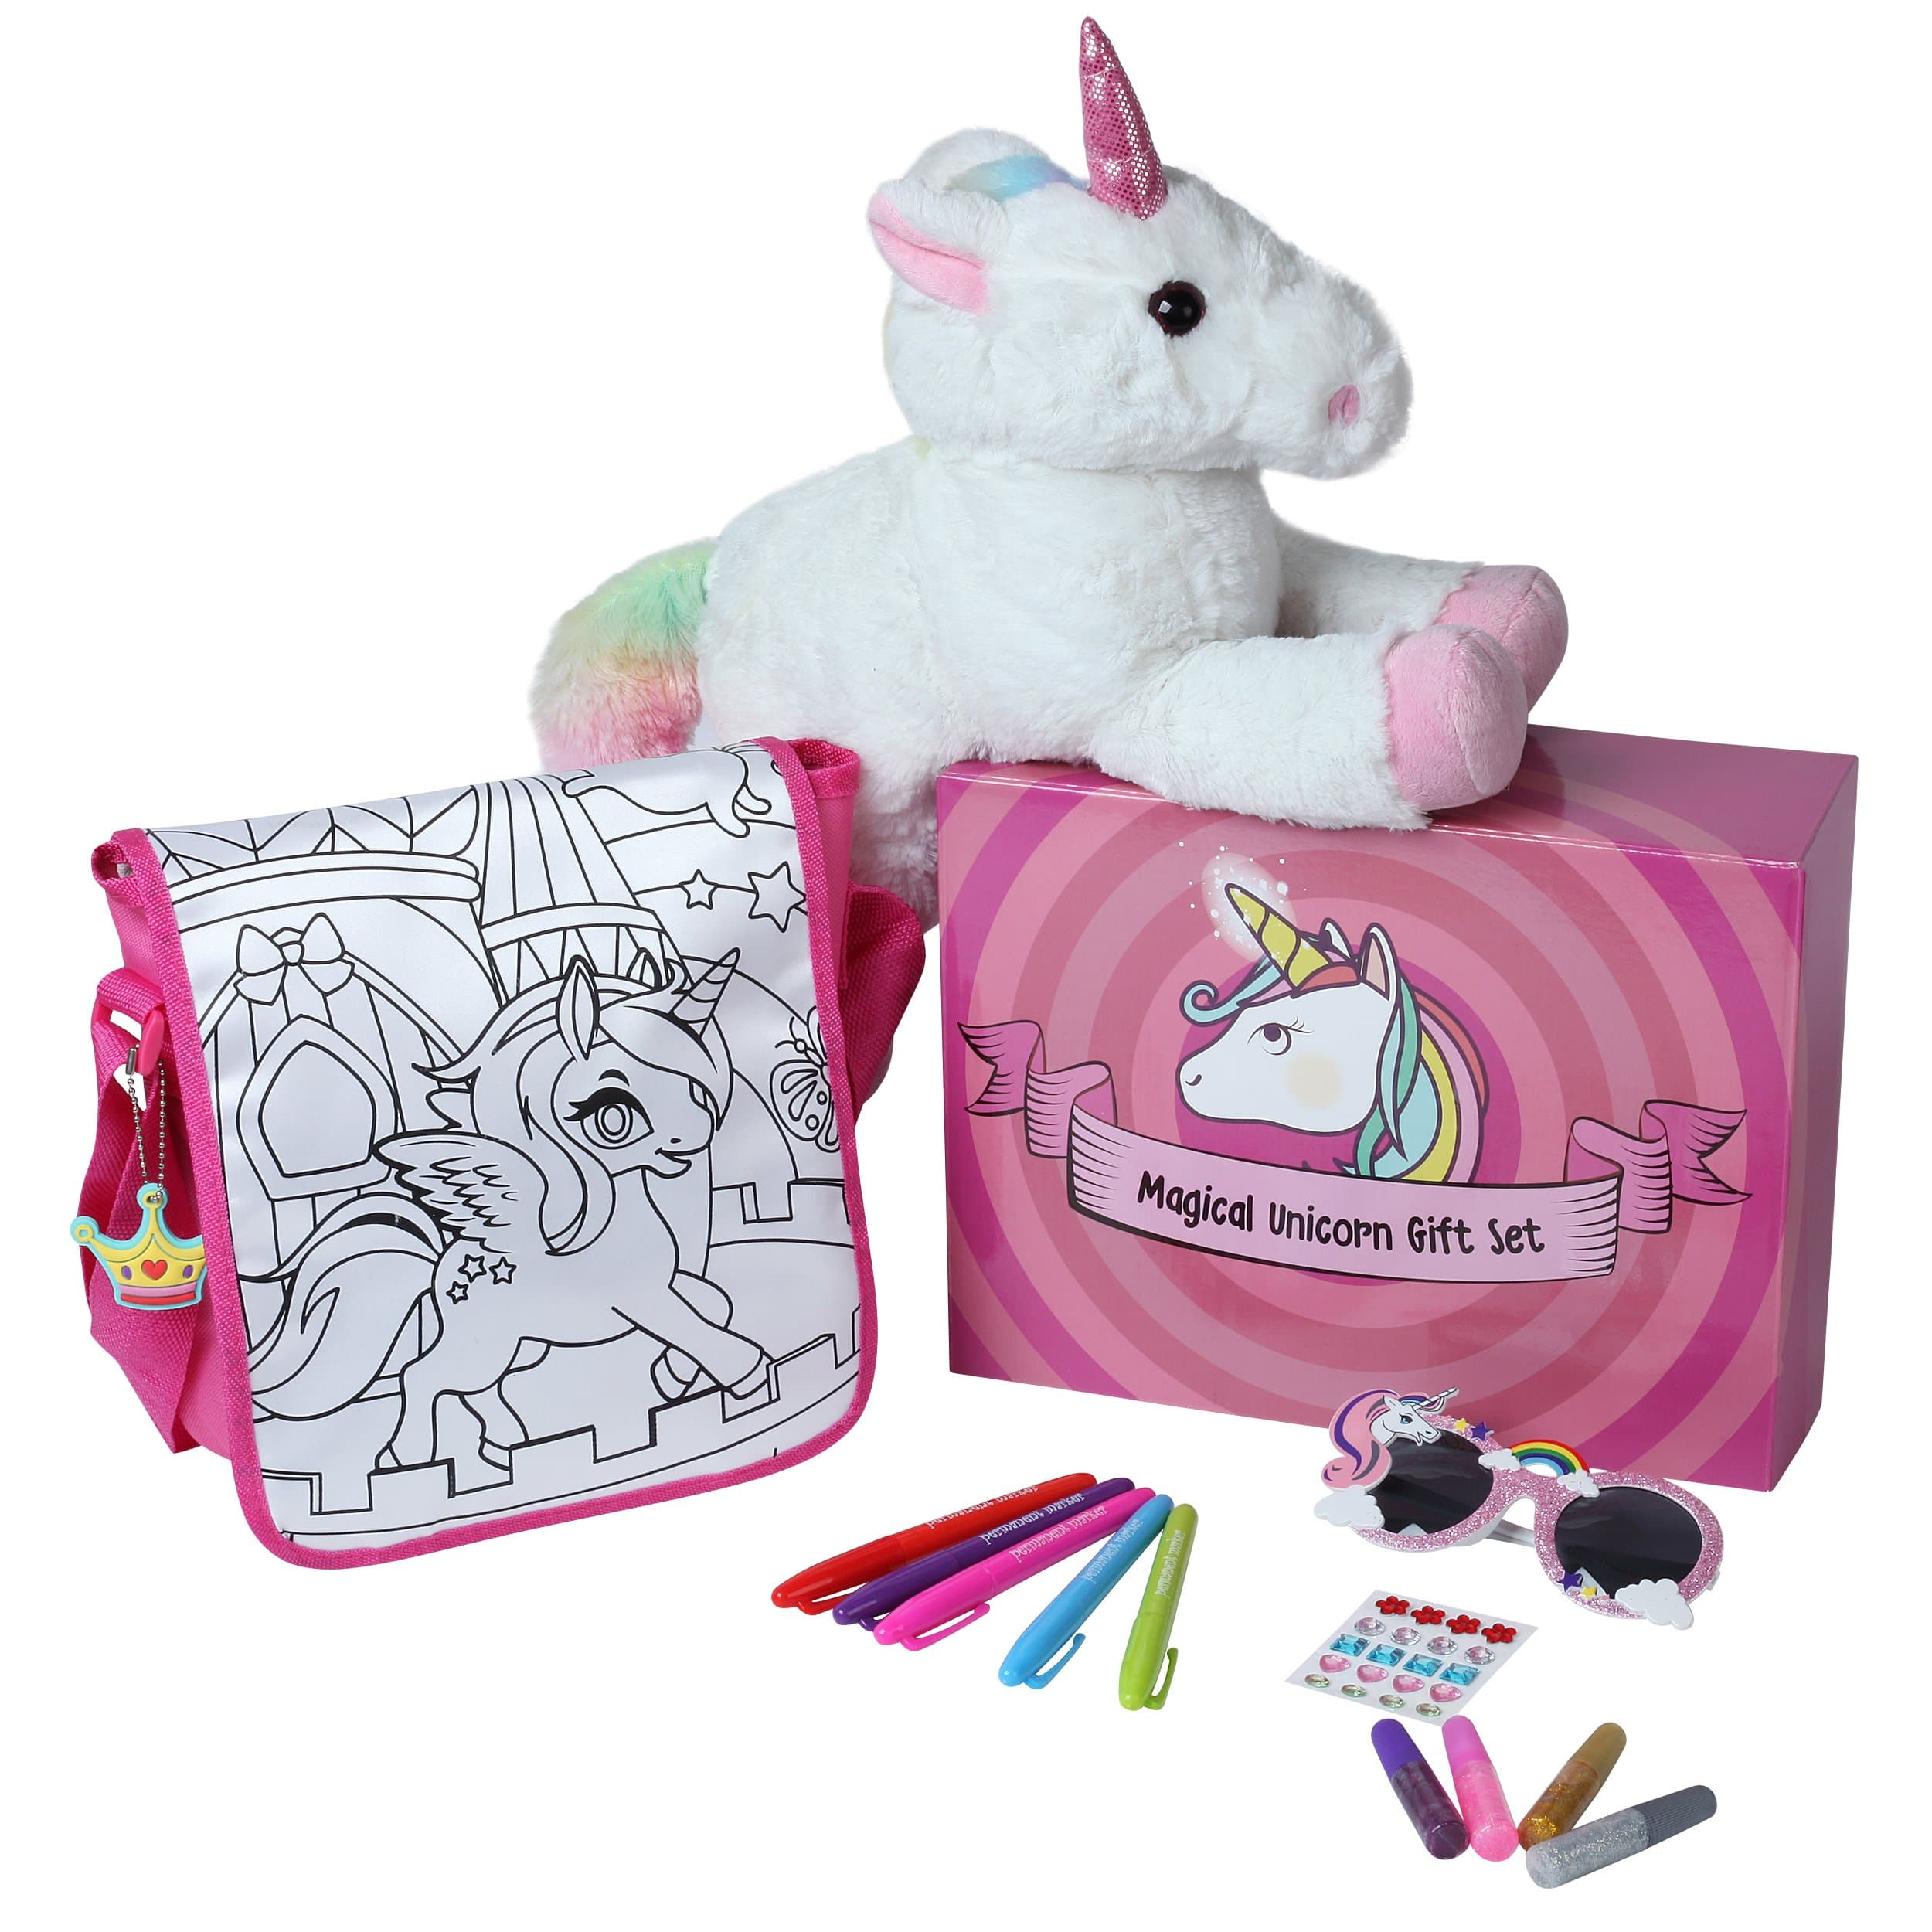 Unicorn 15'' Stuffed Plush Gift Super Set